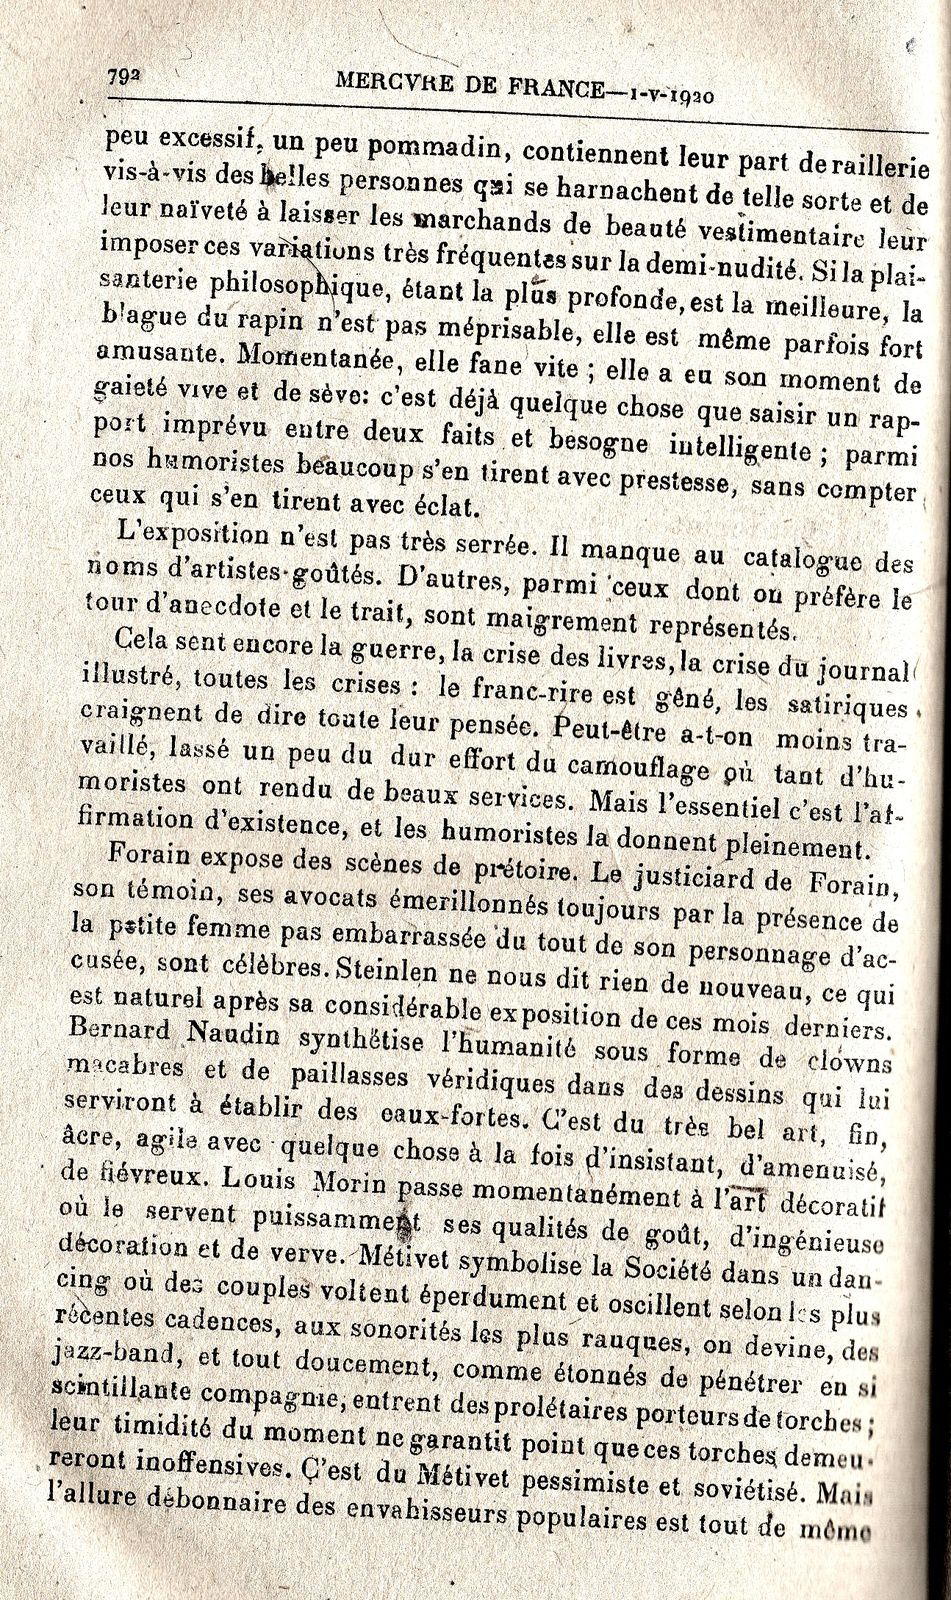 Archive : Le Salon des humoristes, Mercure de France 1er mai 1920